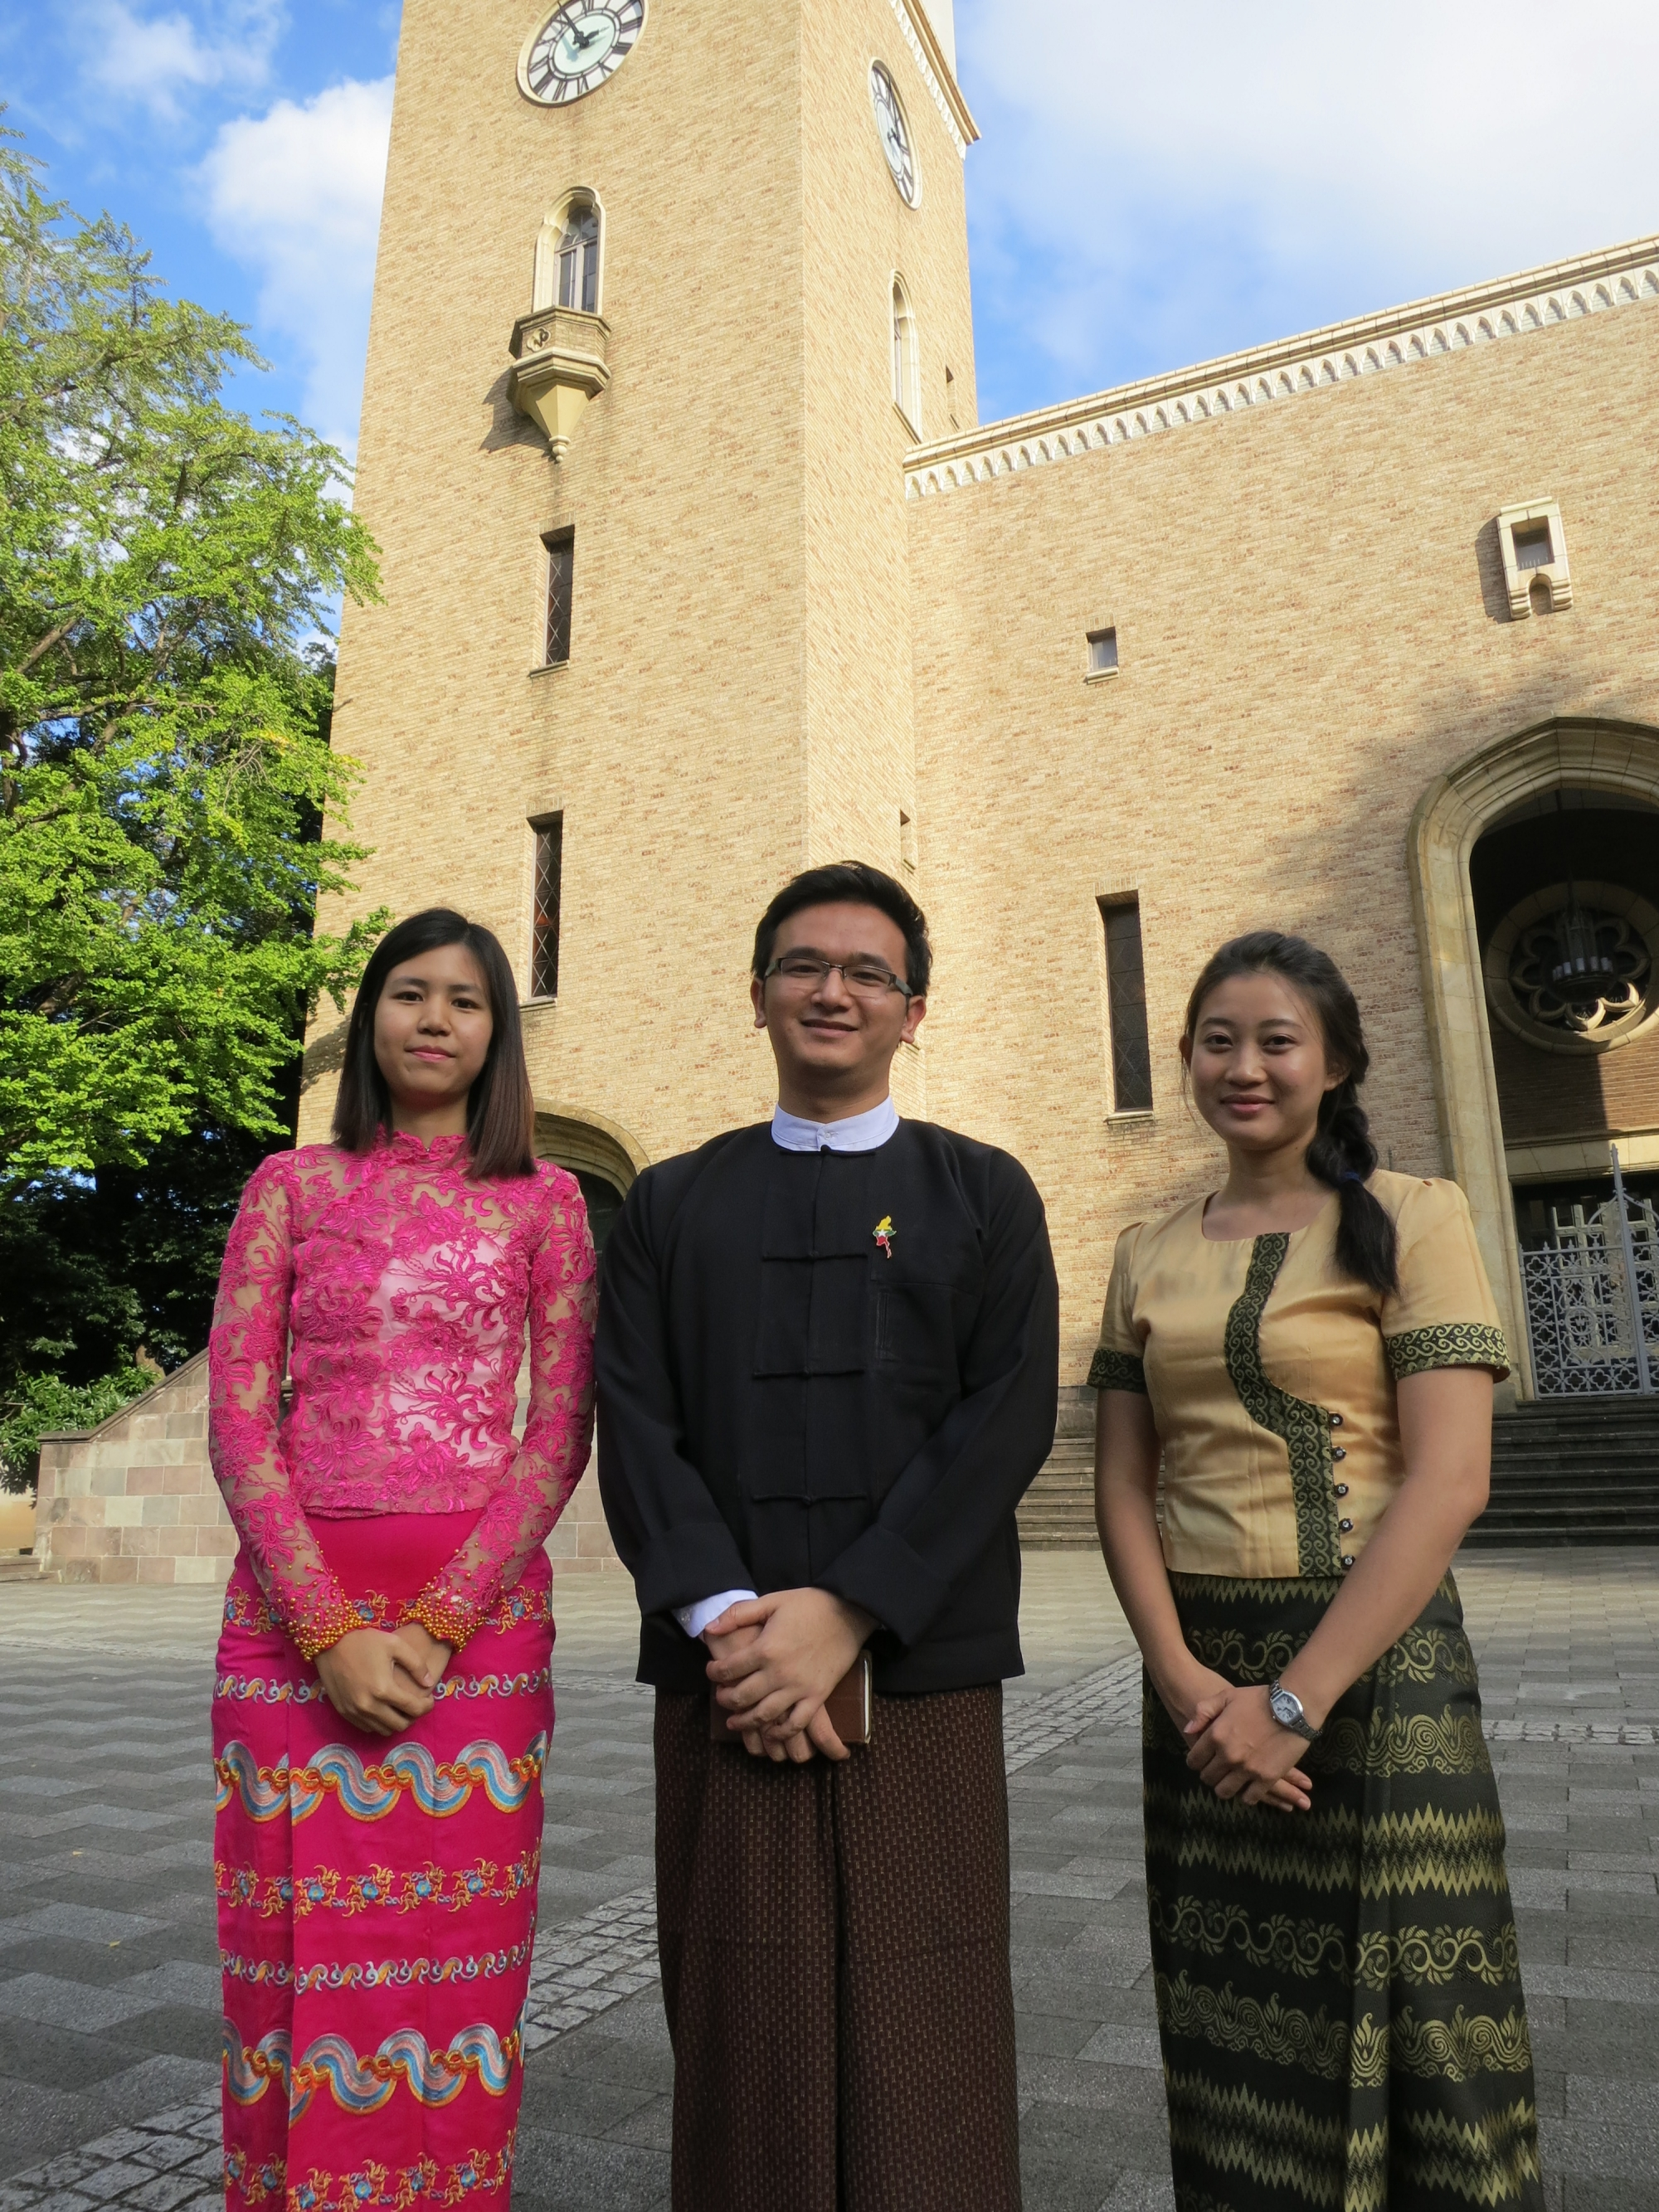 Students from Myanmar inspired to serve their country